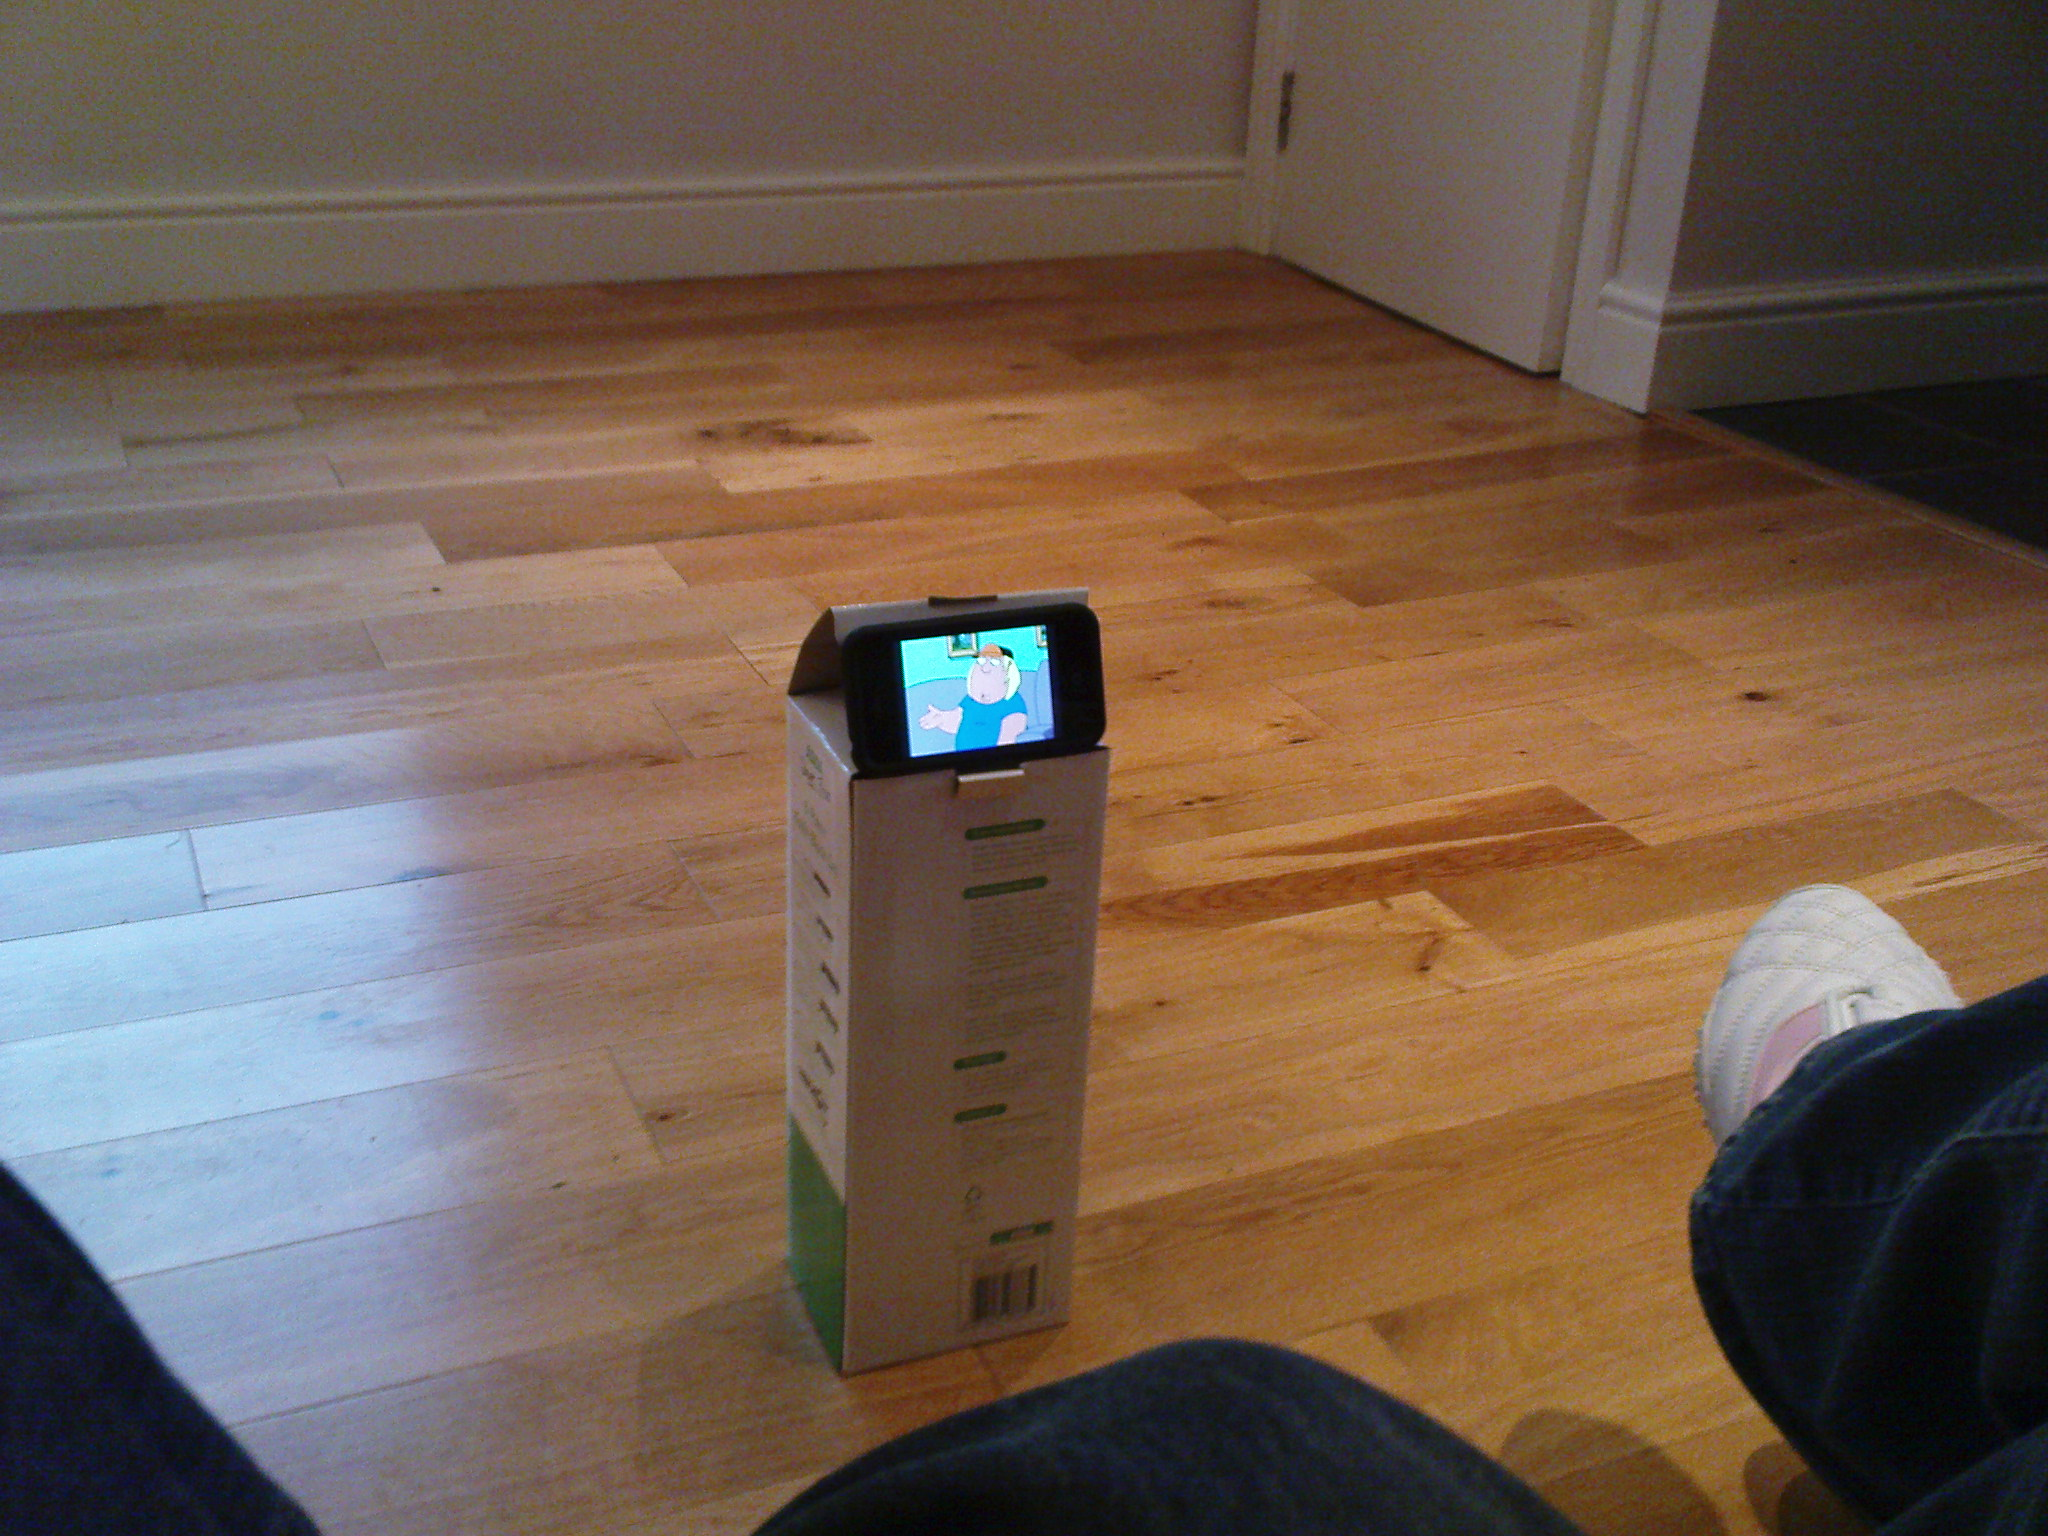 iPhone 2.0 - now with cardboard stand